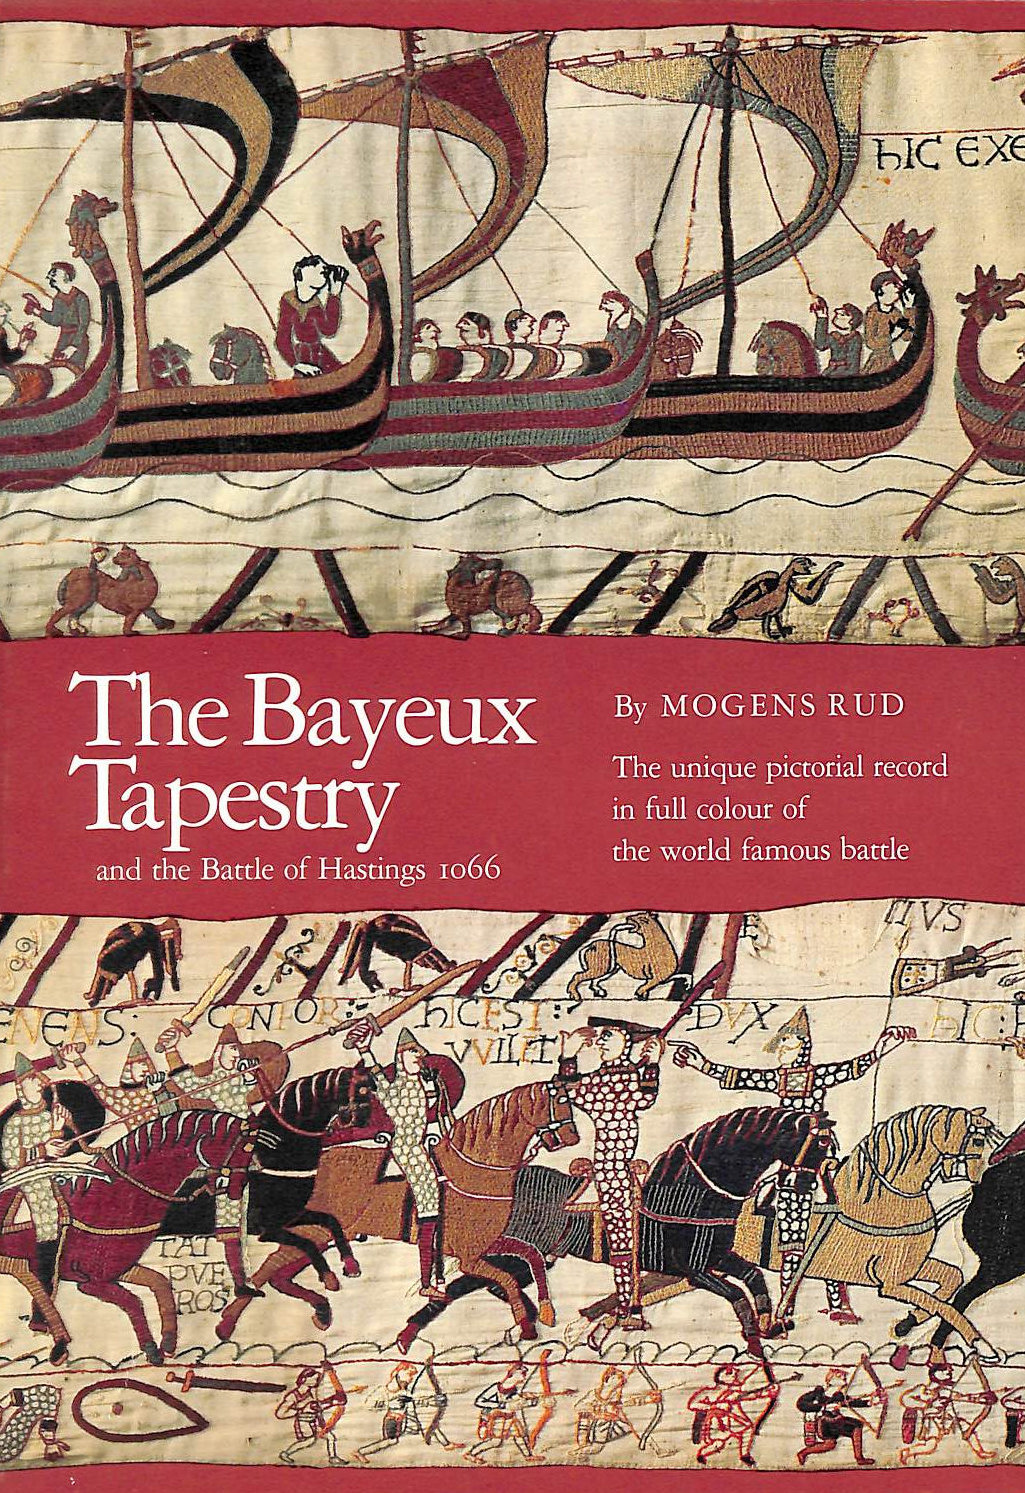 Image for The Bayeux Tapestry and the Battle of Hastings, 1066